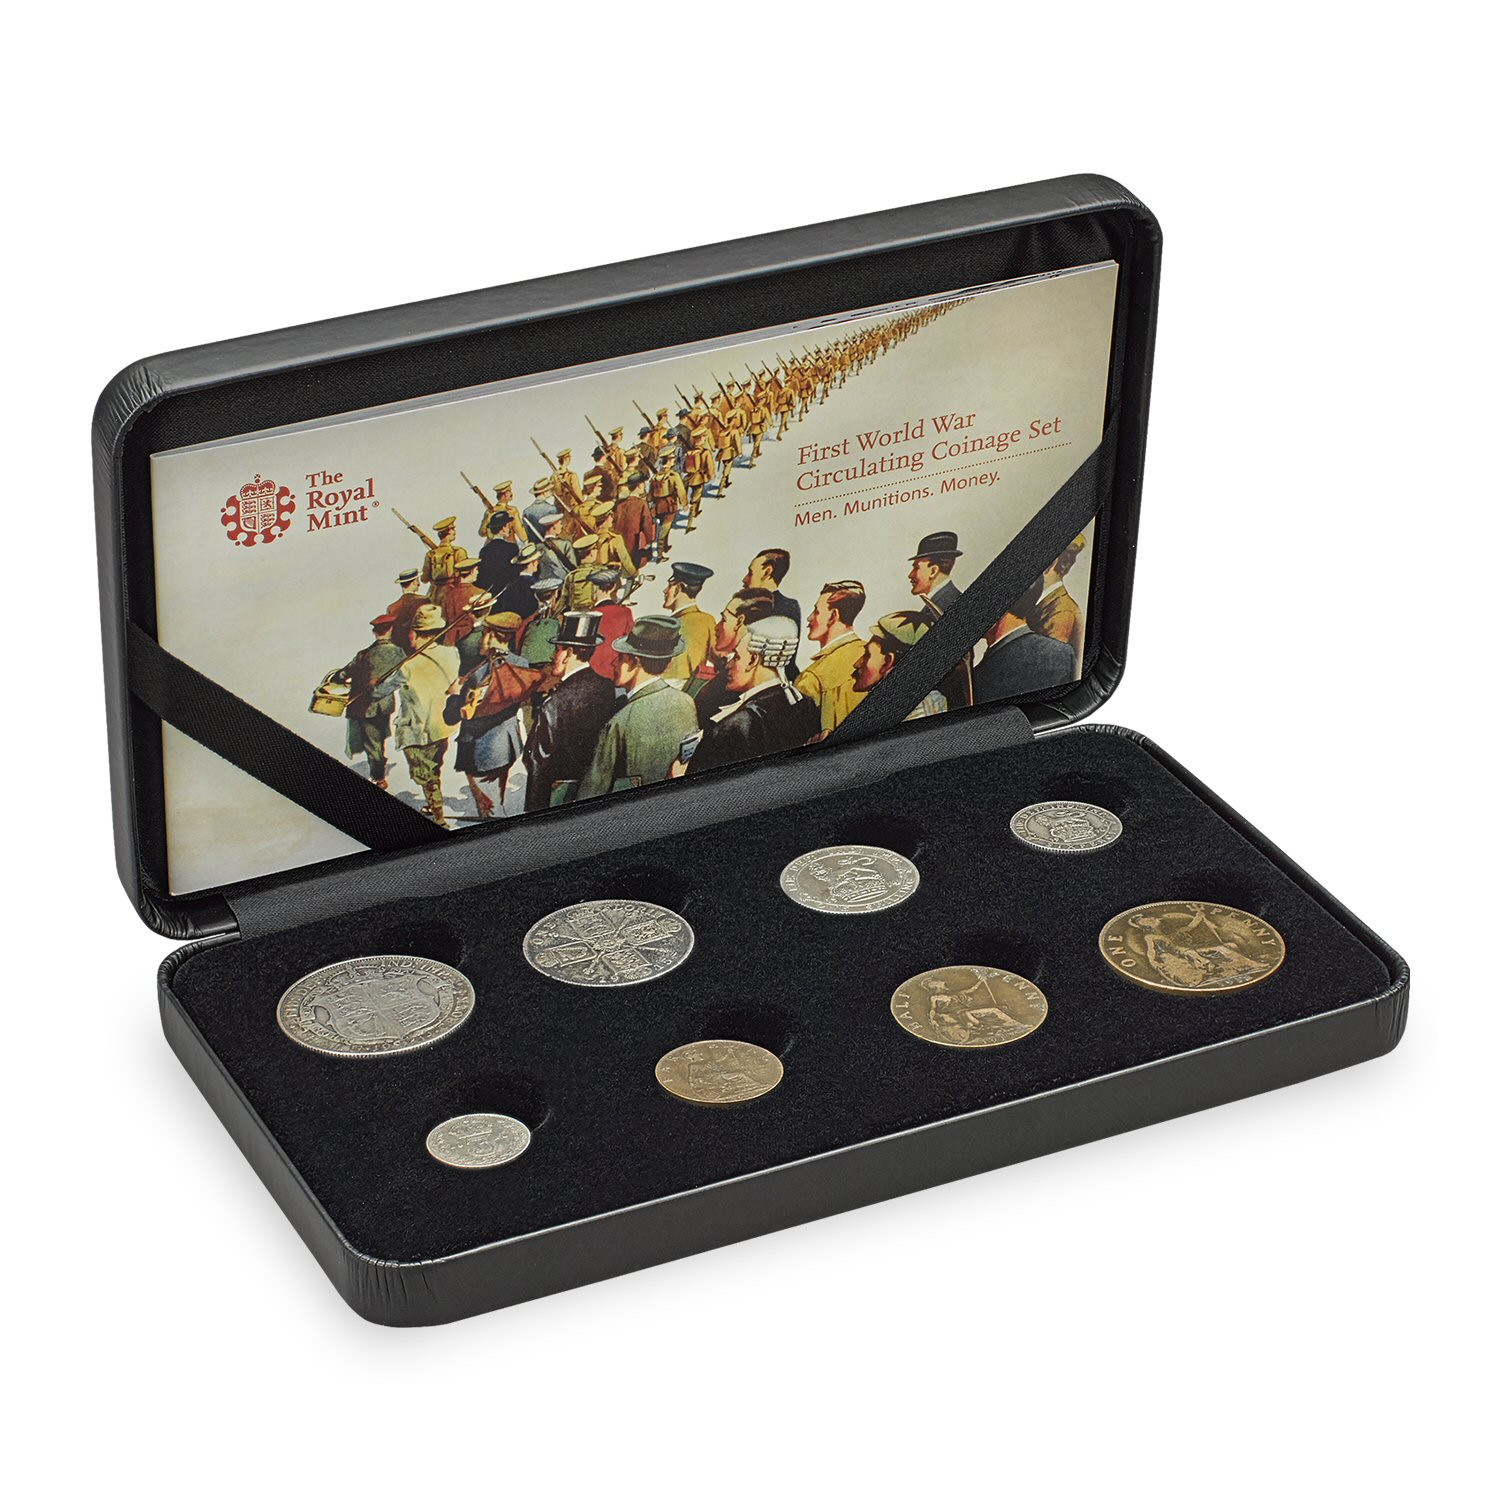 First World War Coinage Set